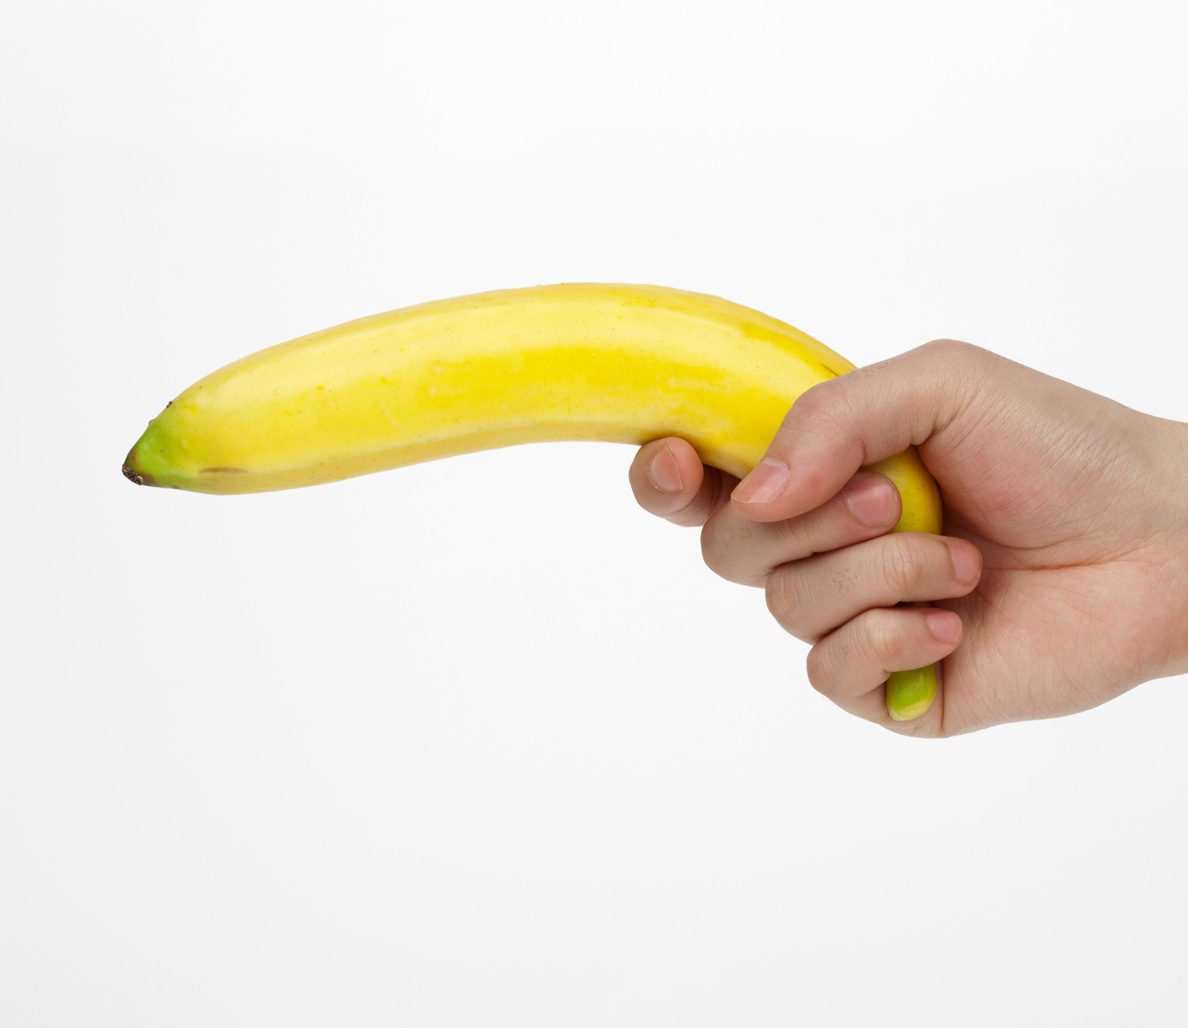 Real ways to grow your penis